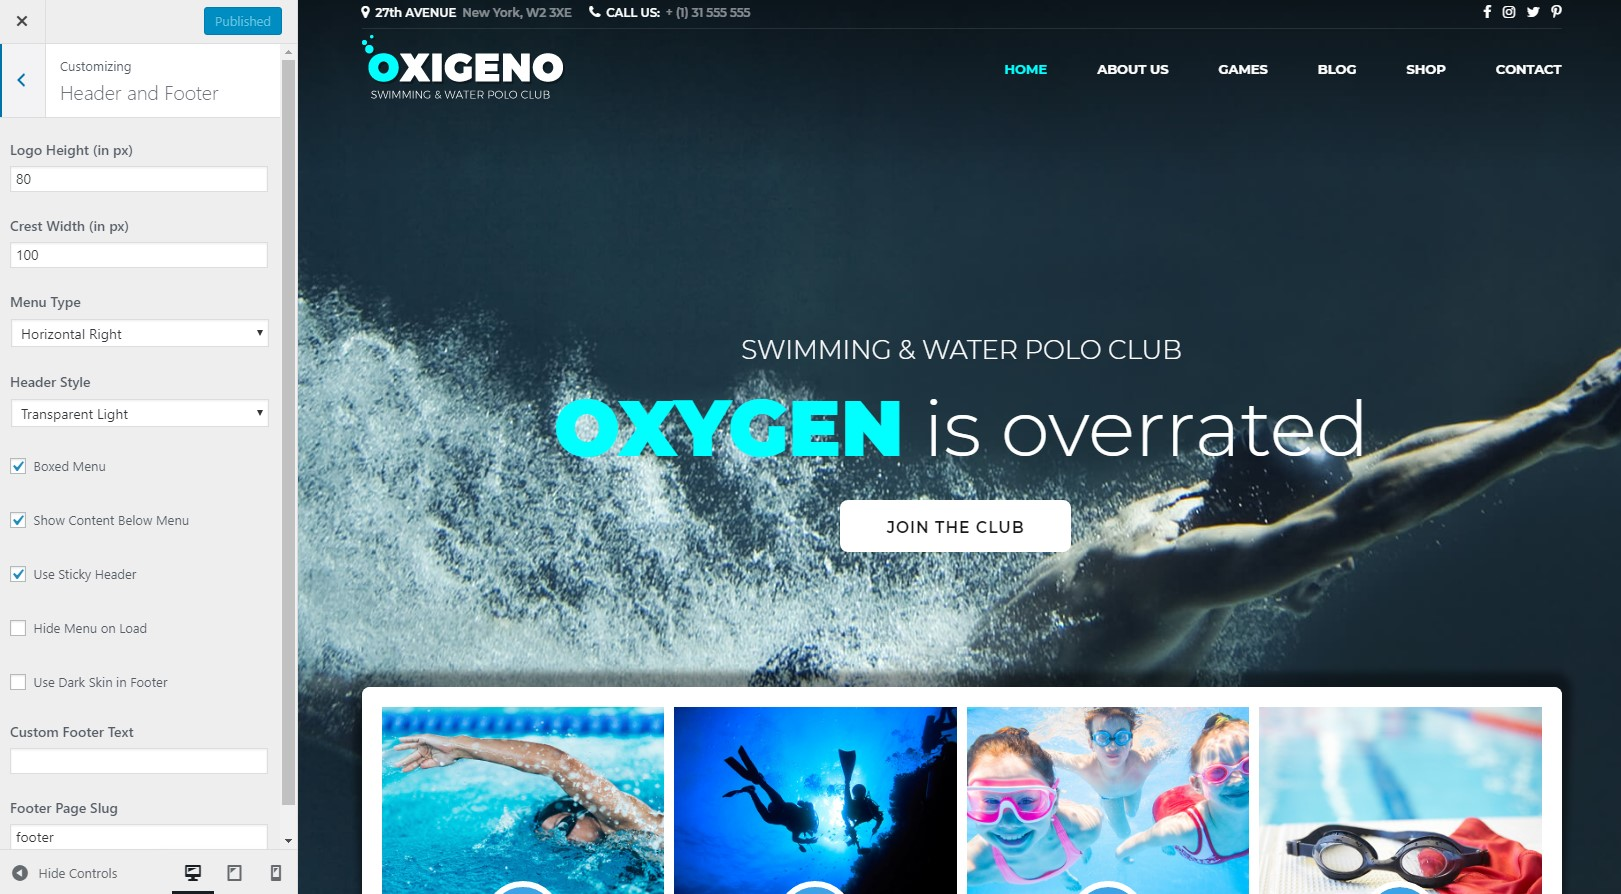 https://documentation.bold-themes.com/oxigeno/wp-content/uploads/sites/28/2018/01/header-and-footer.jpg